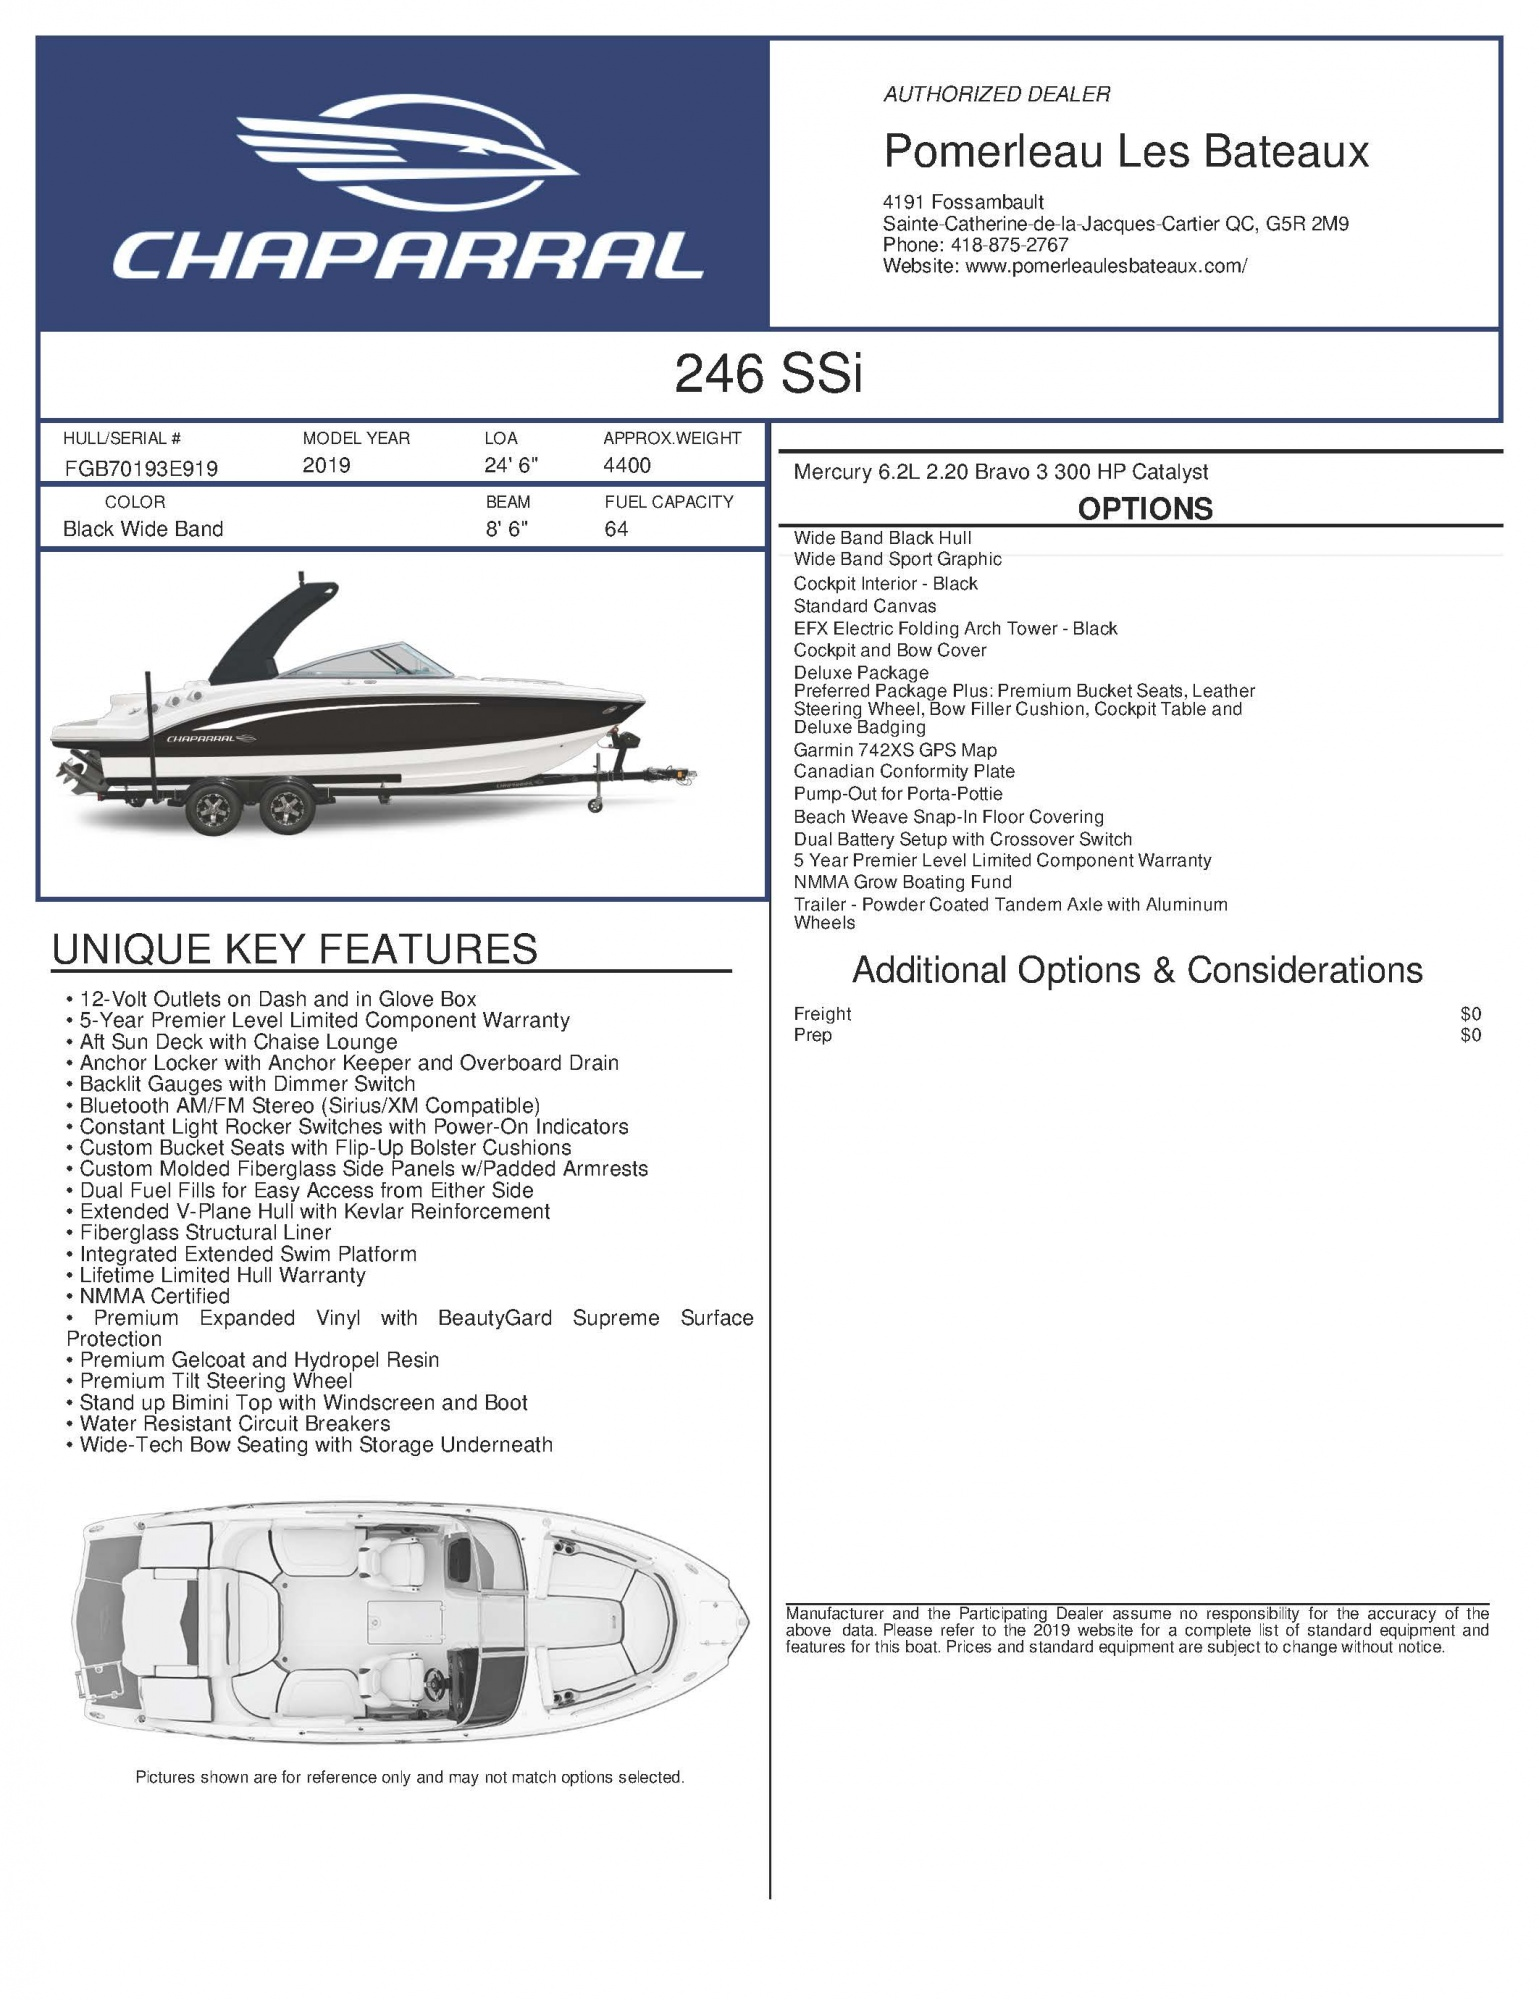 Chaparral 246 SSI - Chaparral-Boats-2019-246--Window-Sticker-266378 (1)